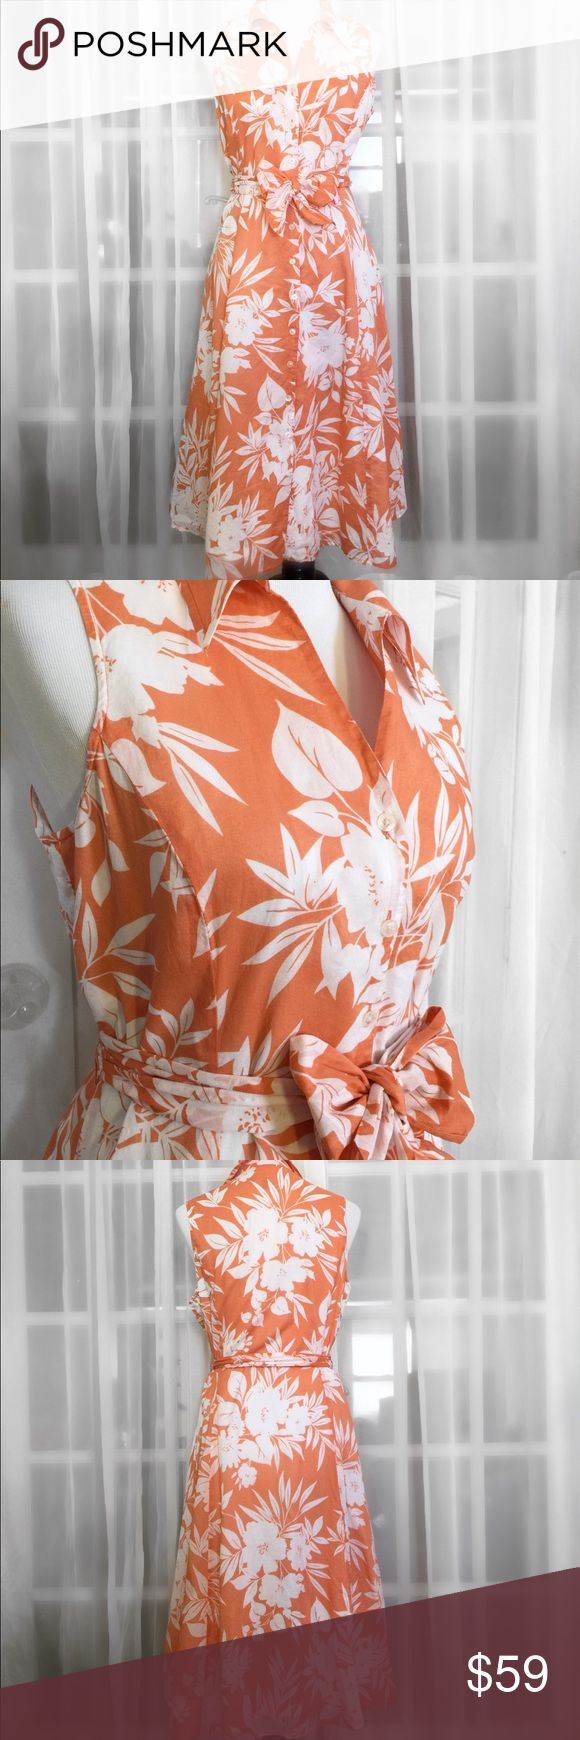 Jones New York Orange & White Sleeveless Sundress Stay cool, breezy and gorgeous with this 100% Cotton Dress by Jones New York Signature collection ❤️ Collared neckline, Sleeveless, full button down, beautiful floral design, belted and hem hits at ankles. Like New condition! Jones New York Dresses Maxi